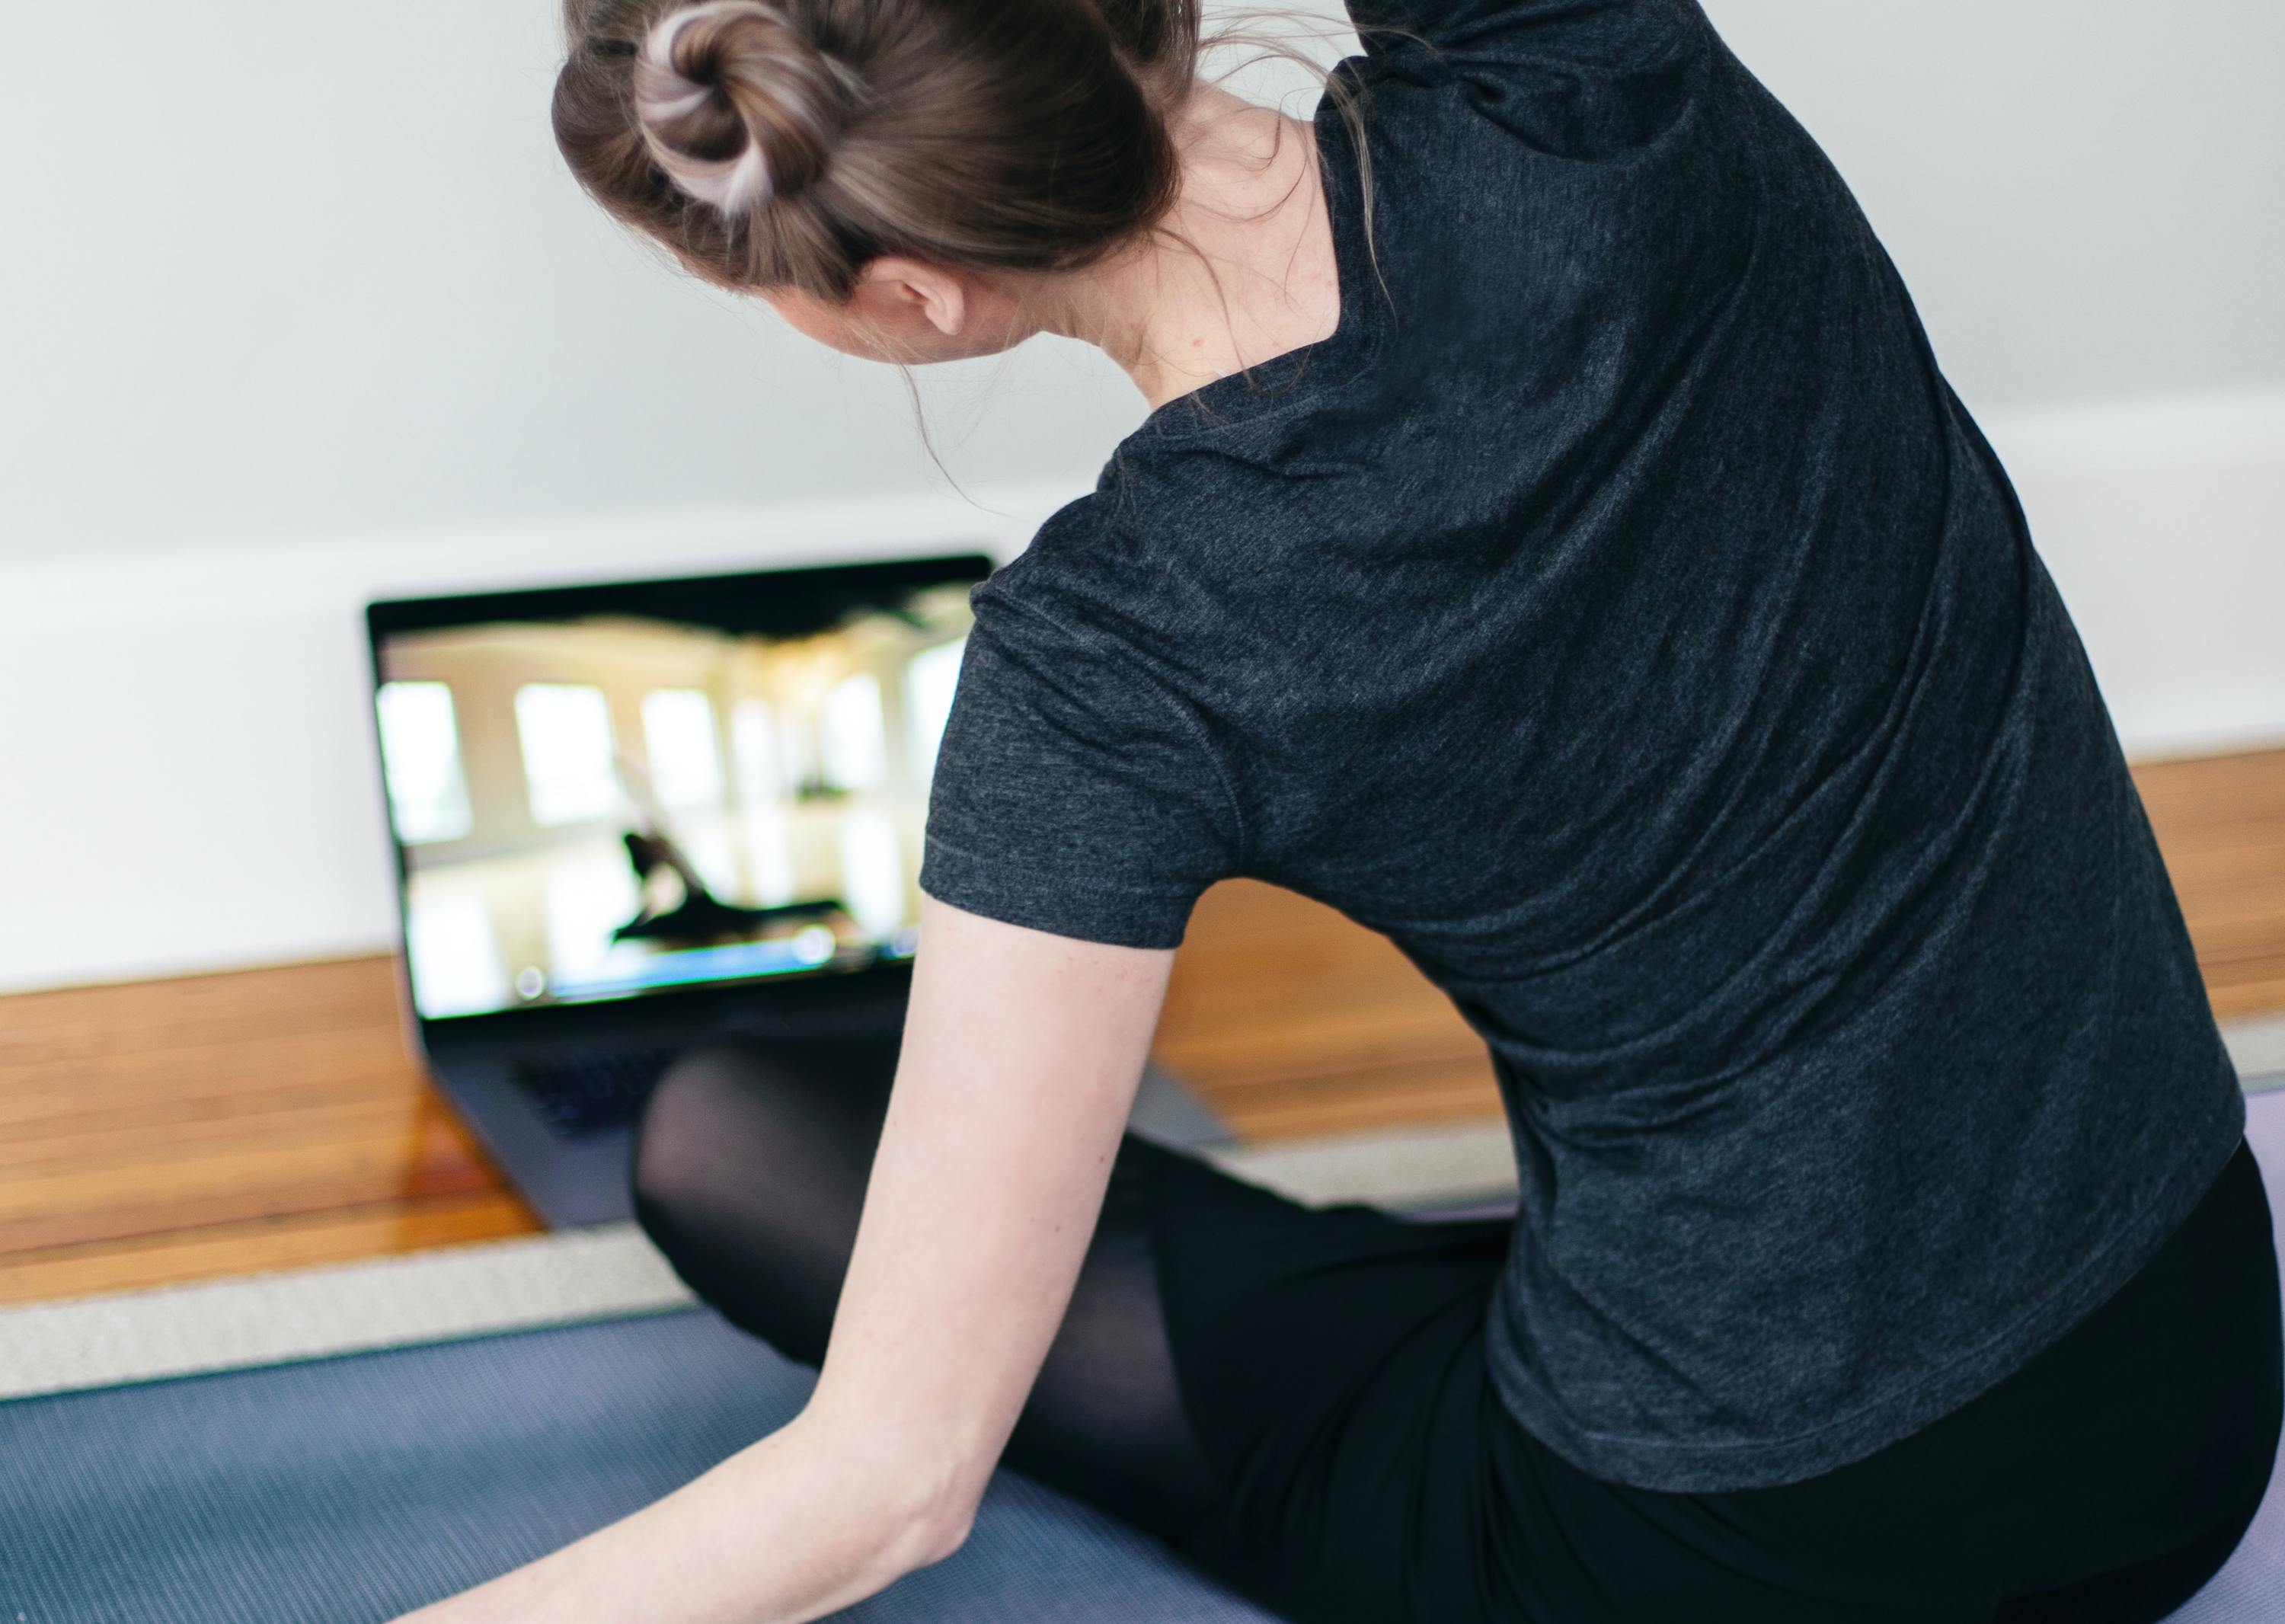 Woman stretches in front of laptop